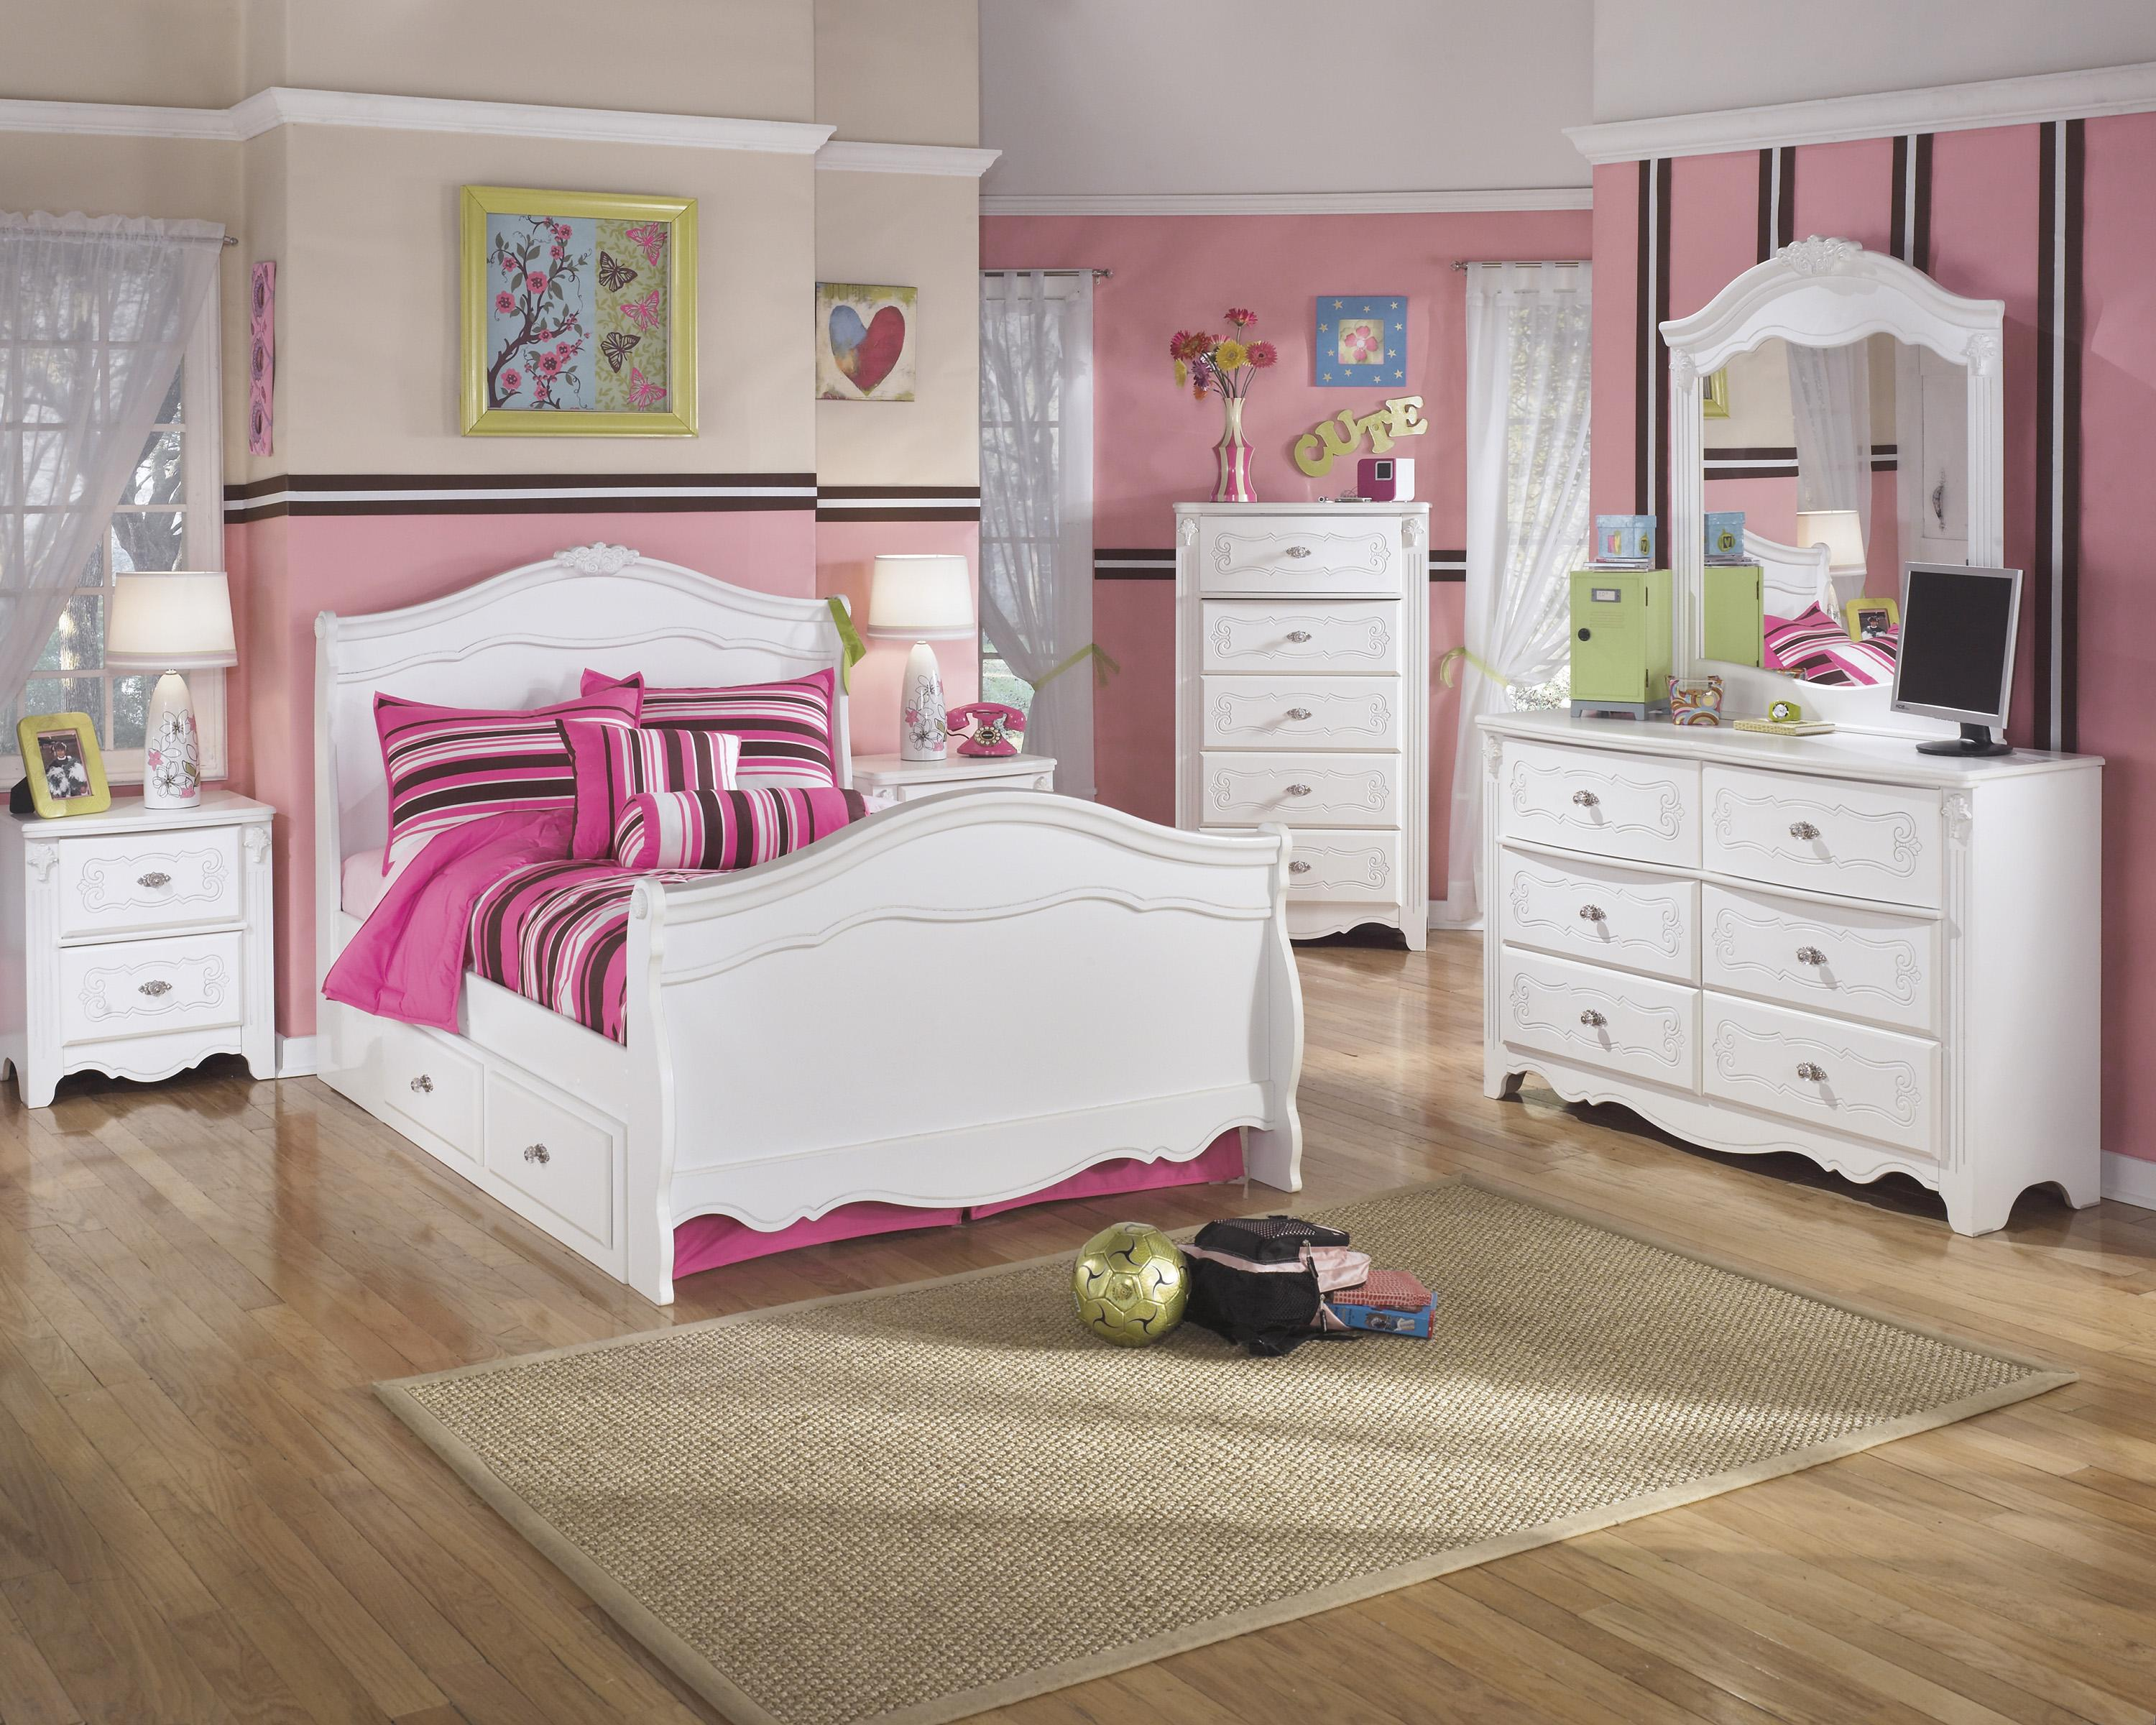 Exquisite Full Bedroom Group by Signature Design by Ashley at Northeast Factory Direct